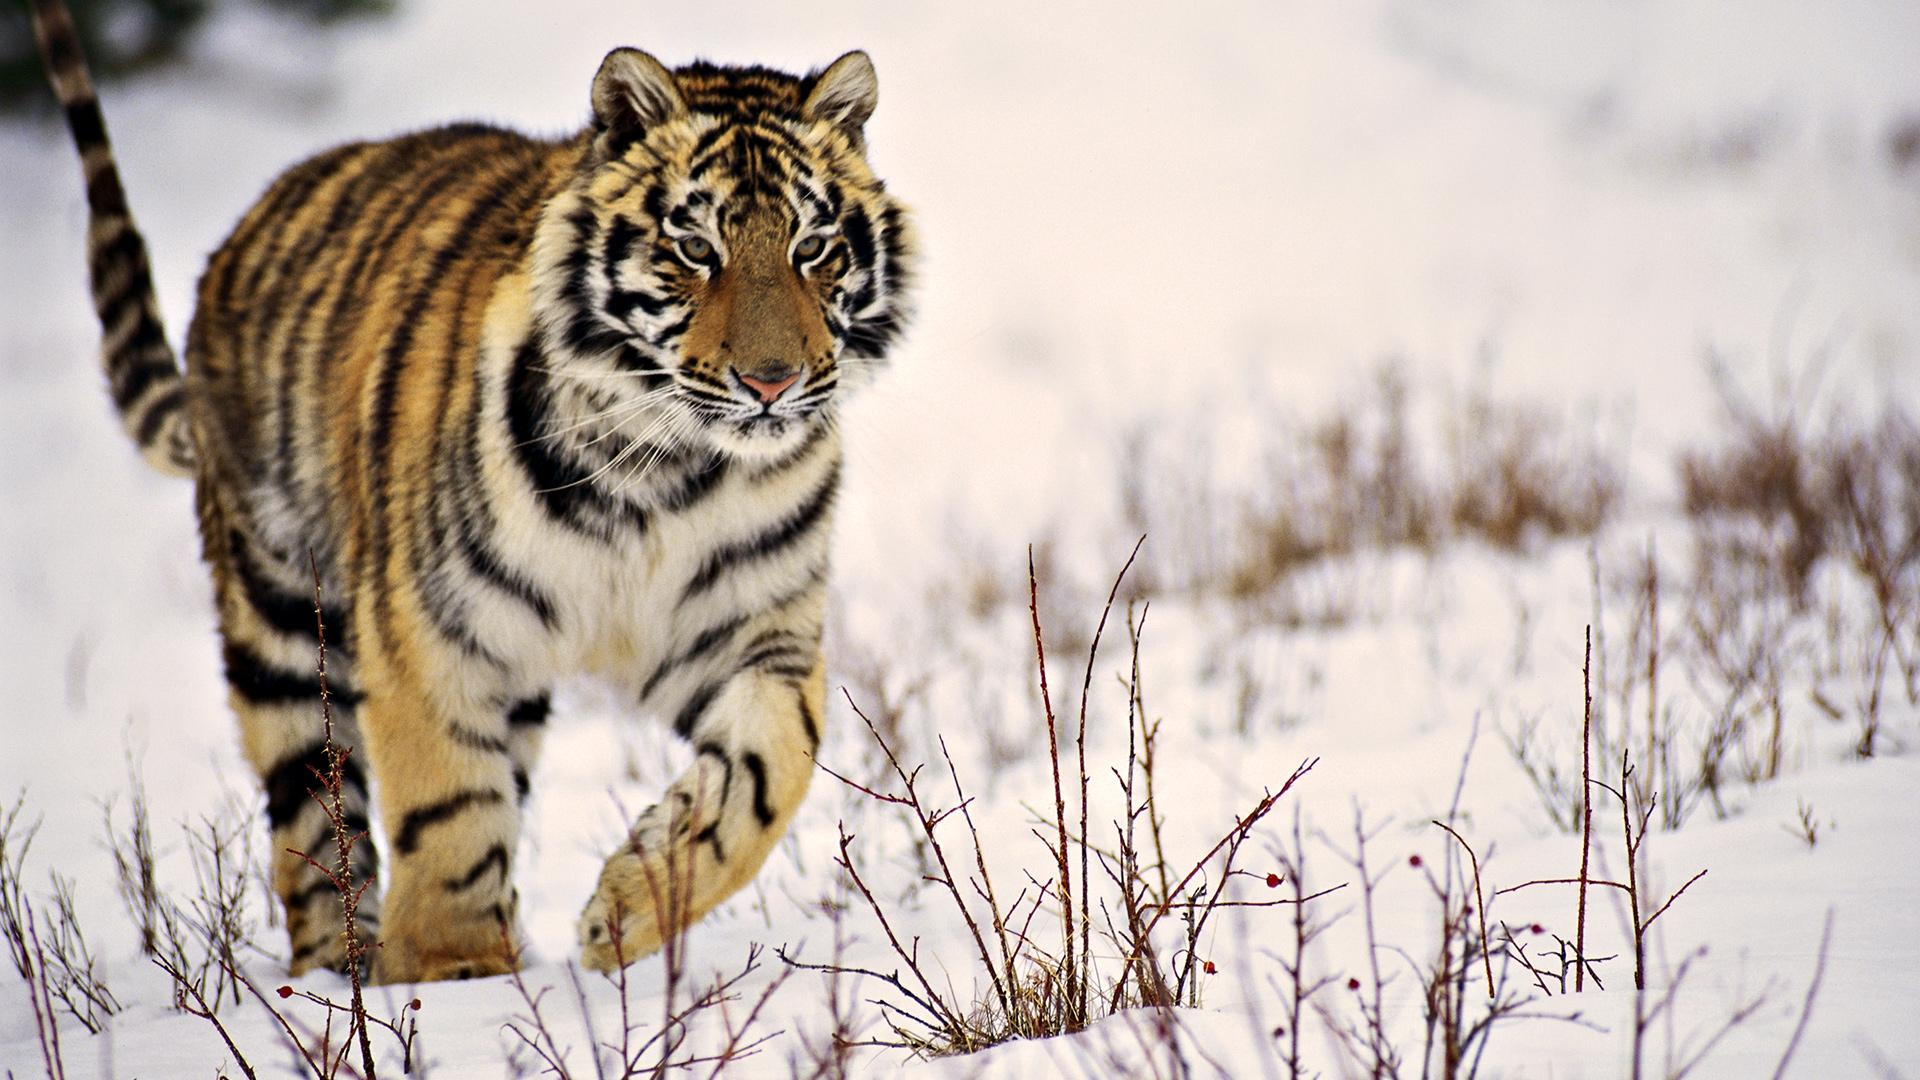 Animals Tiger Snow Wallpapers Hd Desktop And Mobile: Siberian Tiger HD Wallpapers